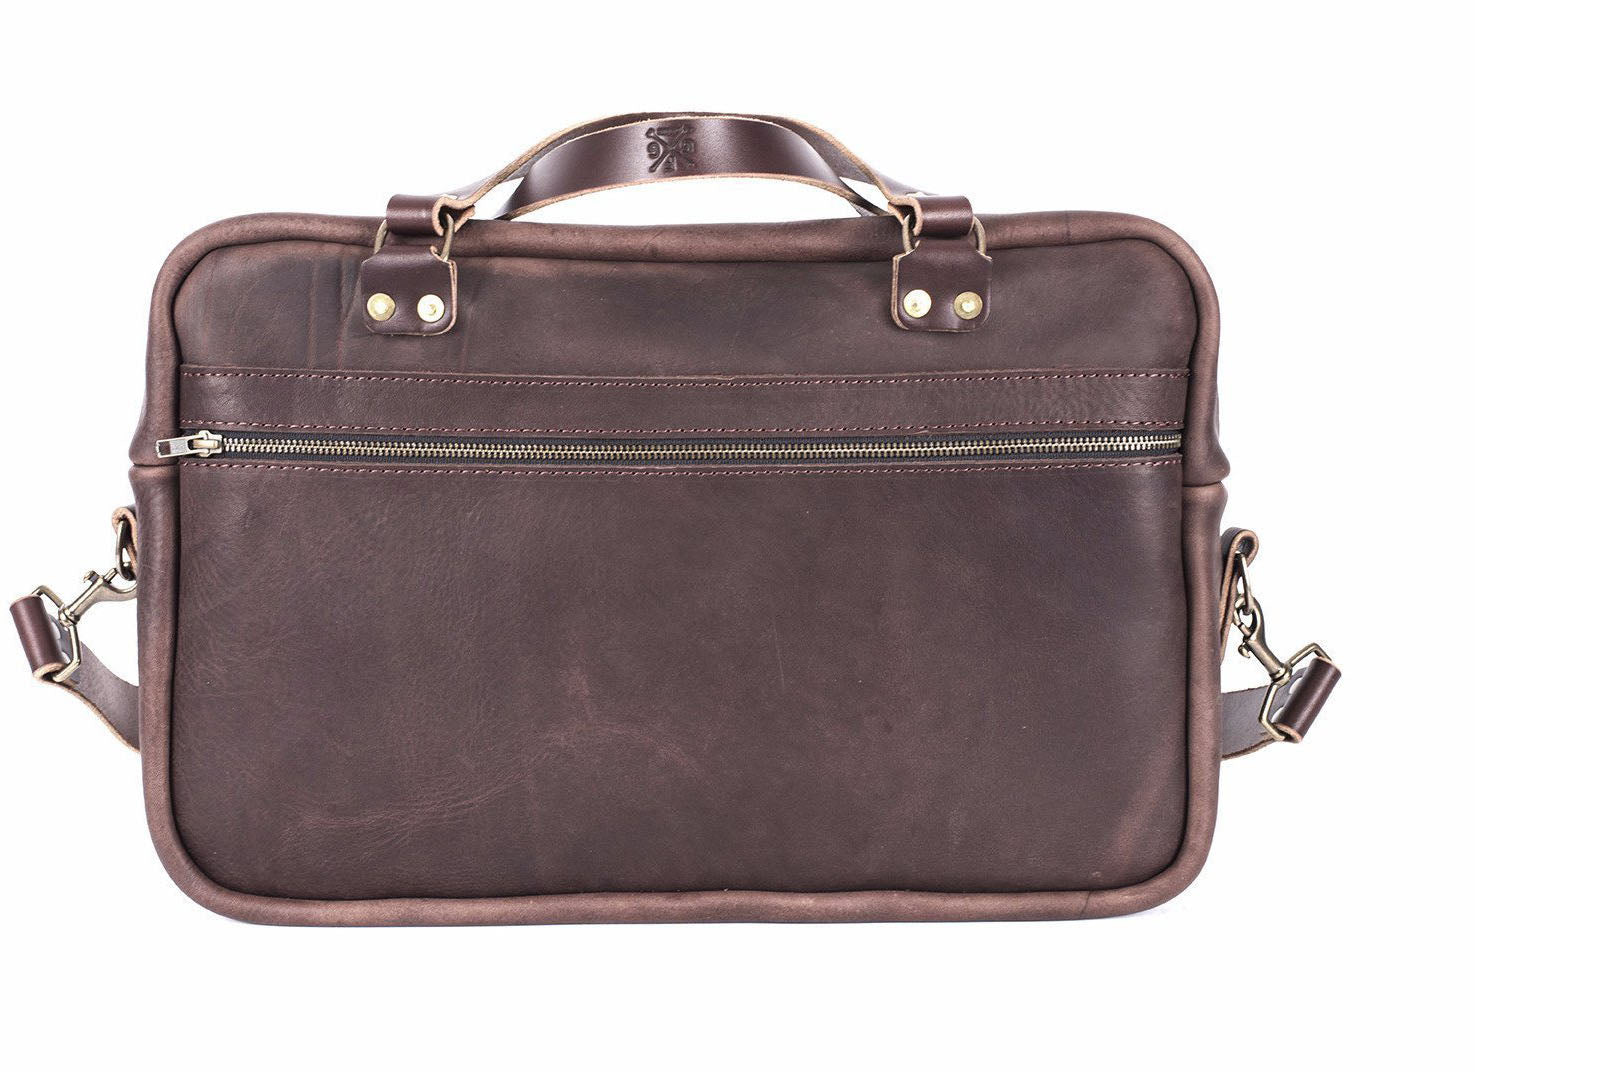 bcab836bab Handmade Leather Goods Made in the USA